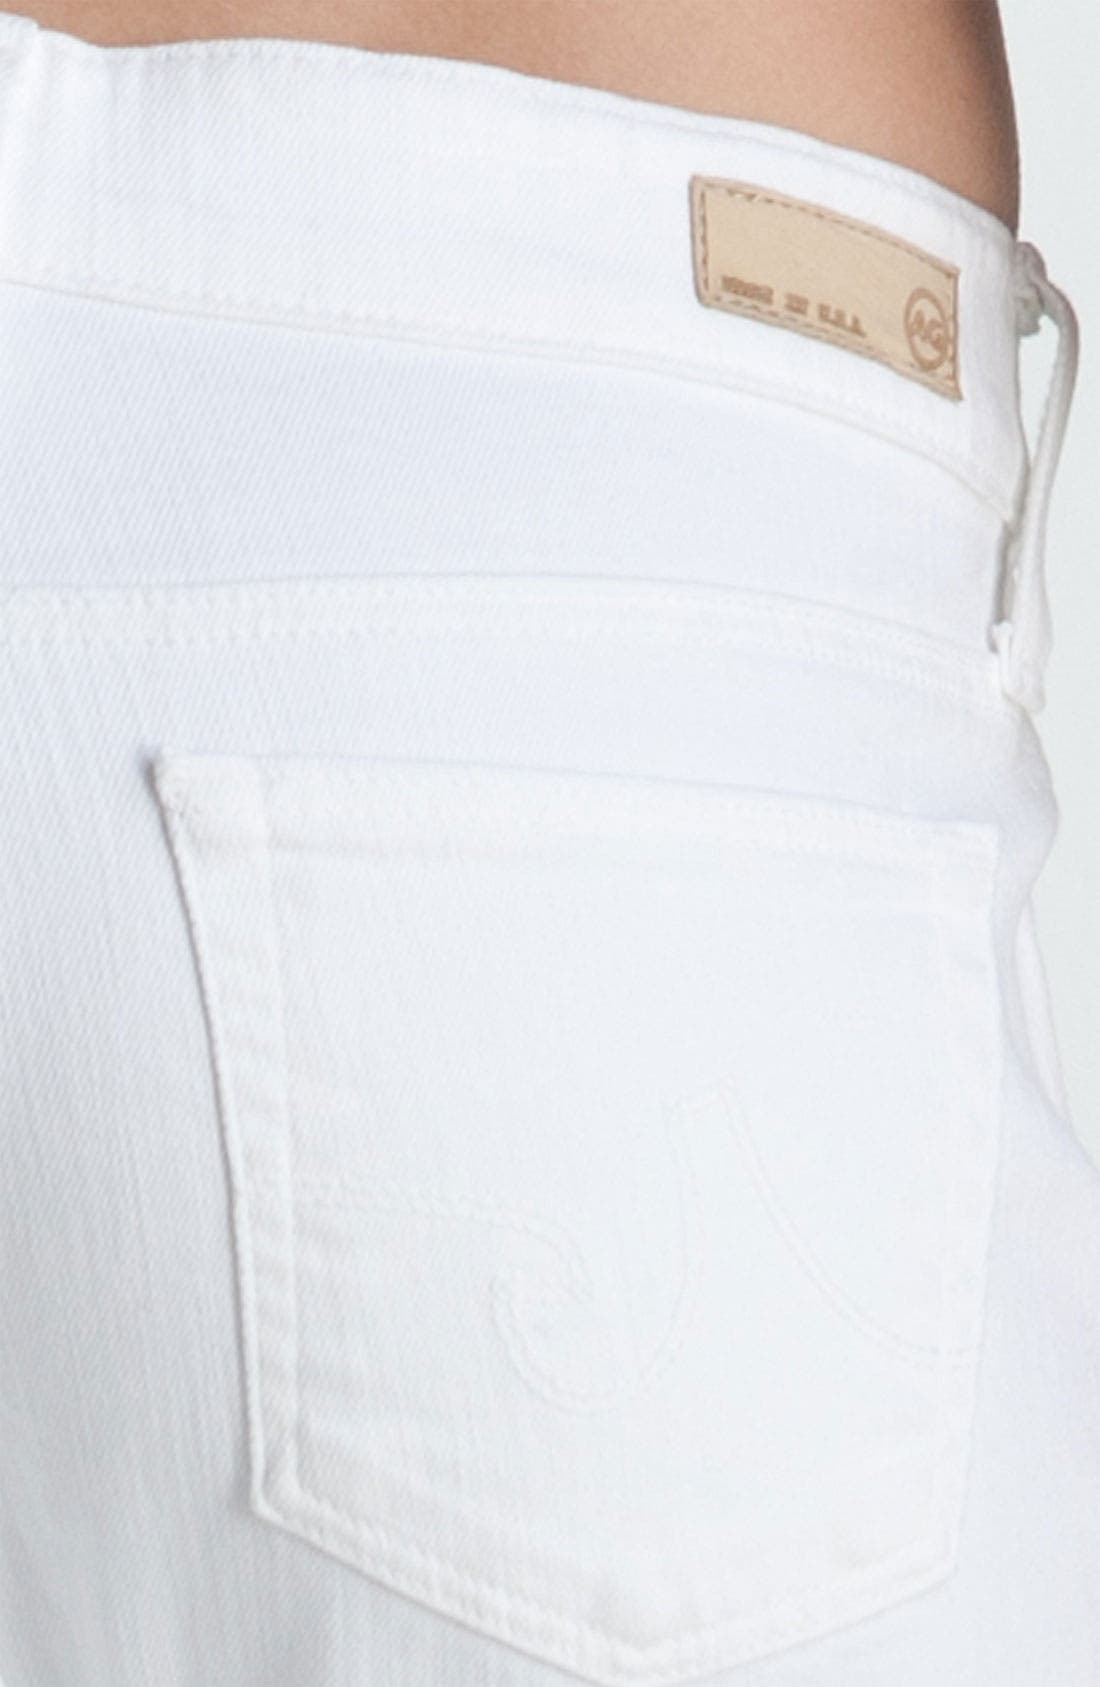 Alternate Image 3  - AG Jeans 'Tomboy' Crop Jeans (White)